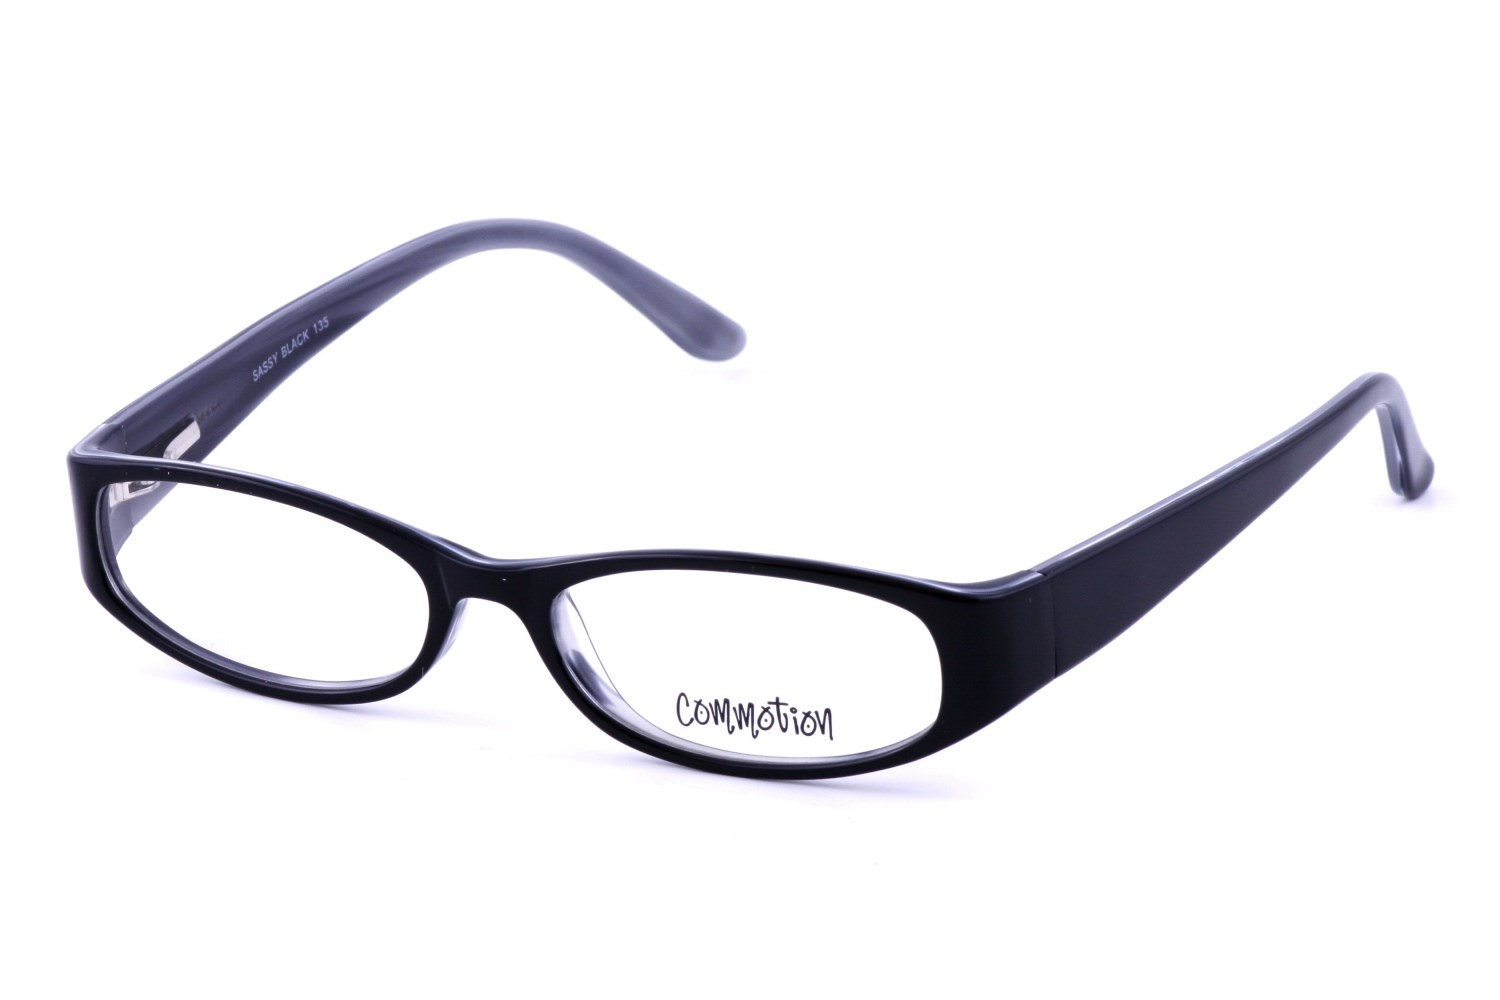 Commotion Sassy Prescription Eyeglasses Frames